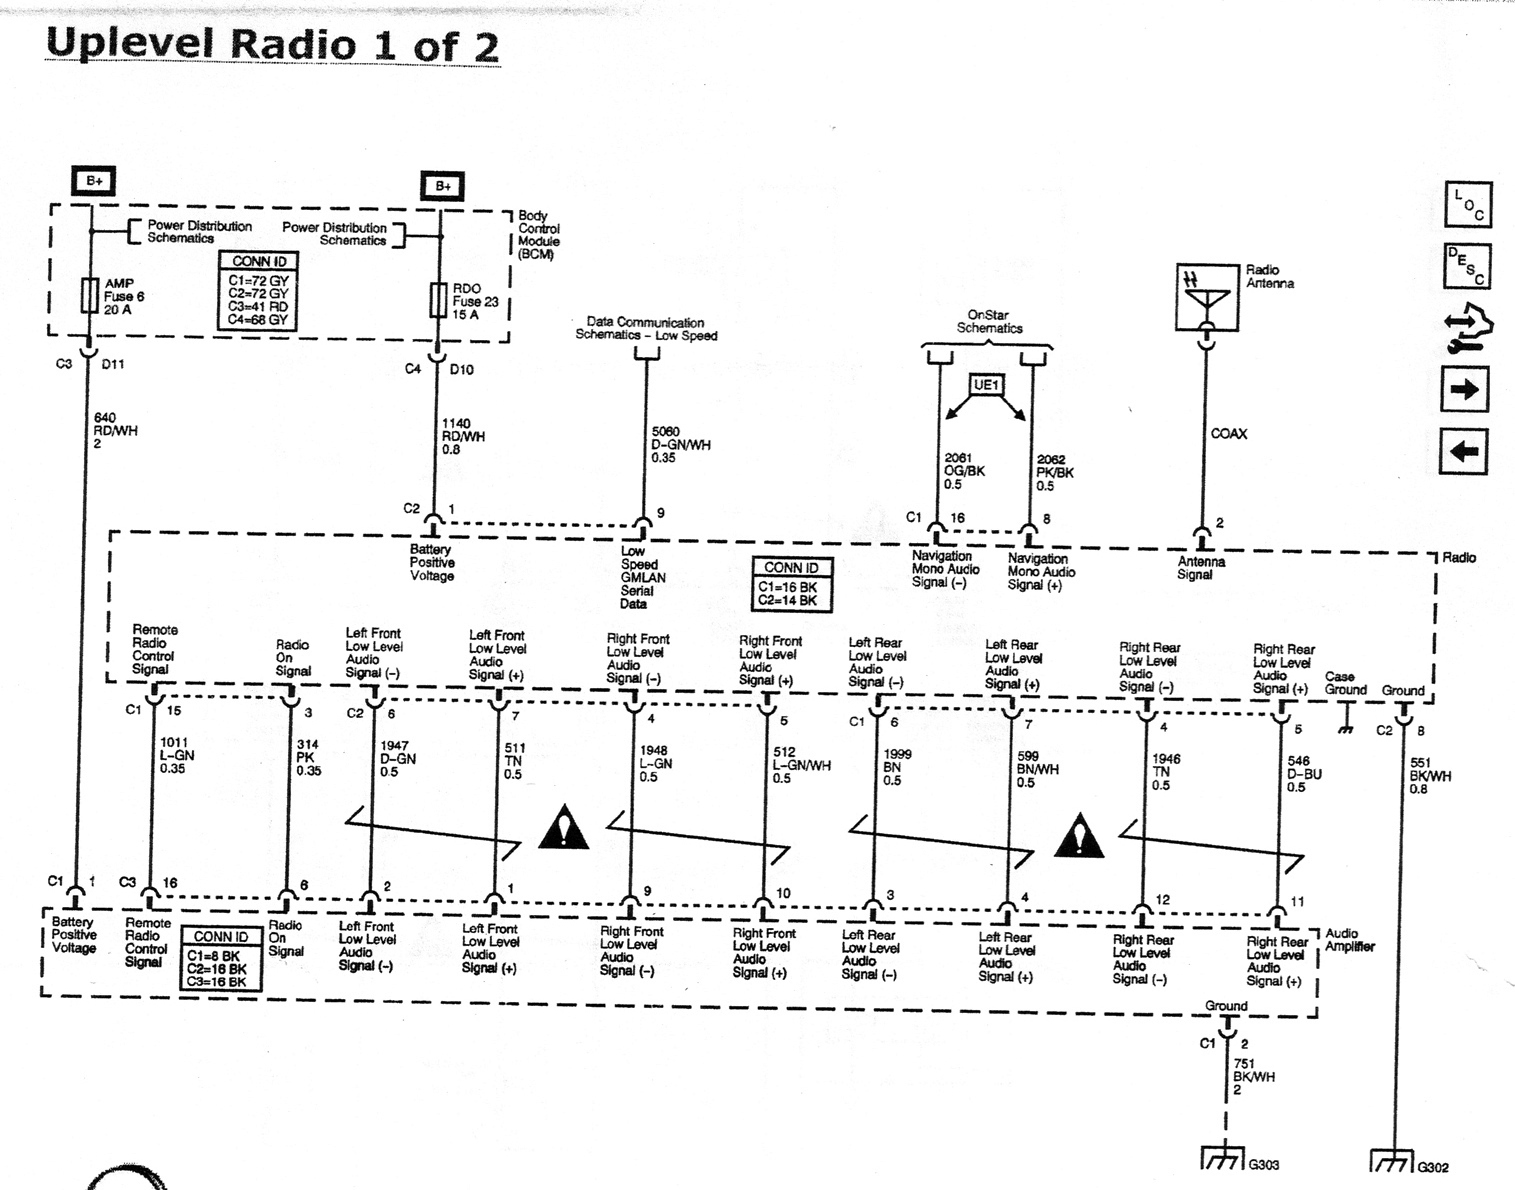 29801 monsoon amp speaker replacement monsoon_wiring_diagram_page_1 volkswagen monsoon wiring diagram wiring diagram simonand firebird monsoon wiring diagram at gsmportal.co